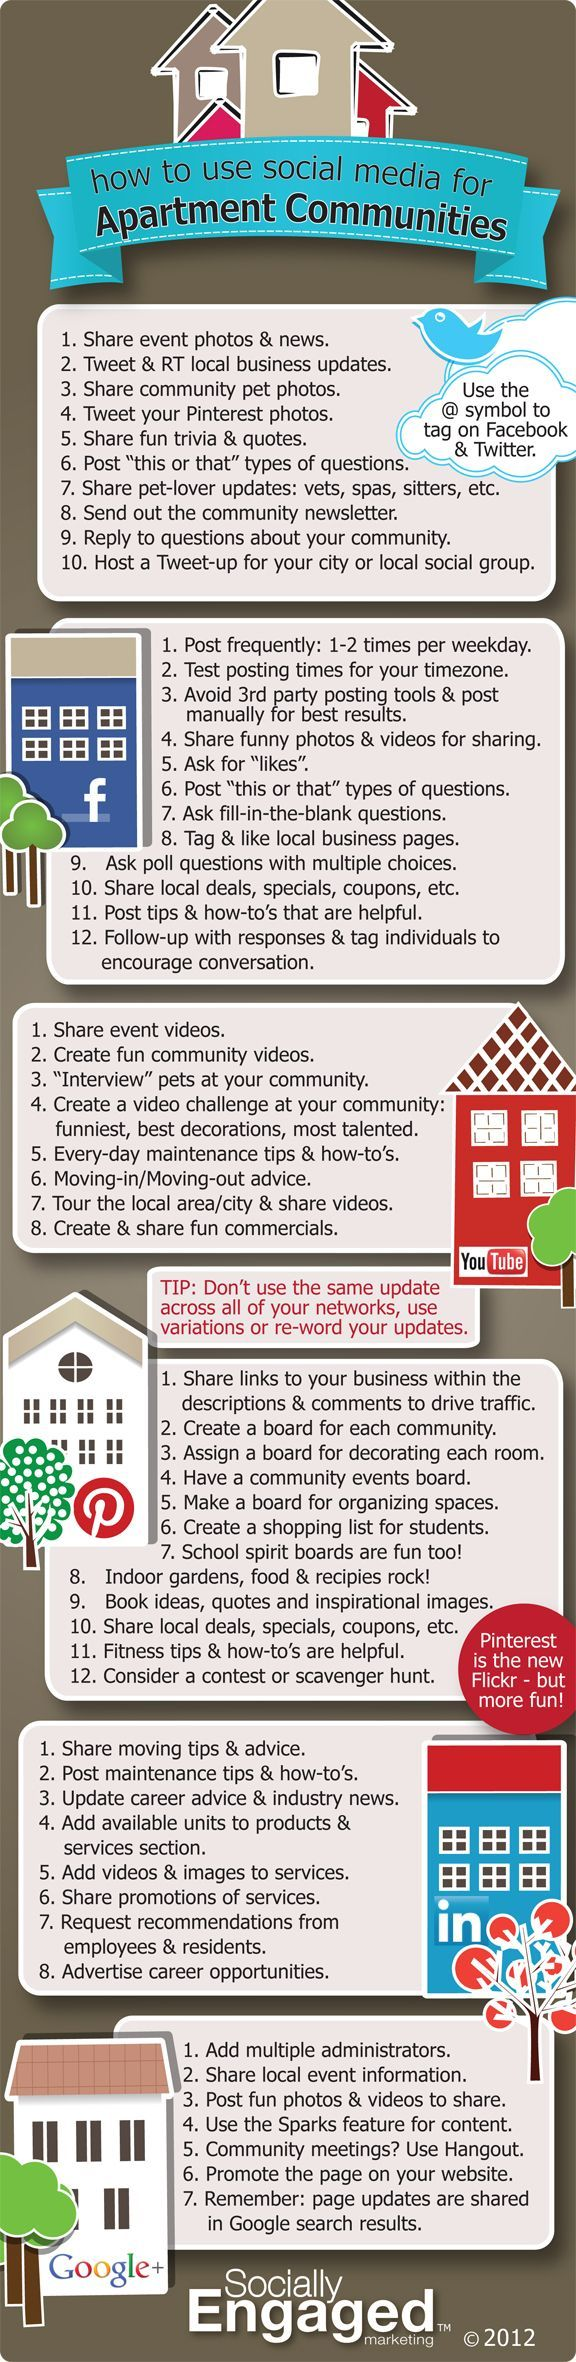 How To Use Social Media For Apartment